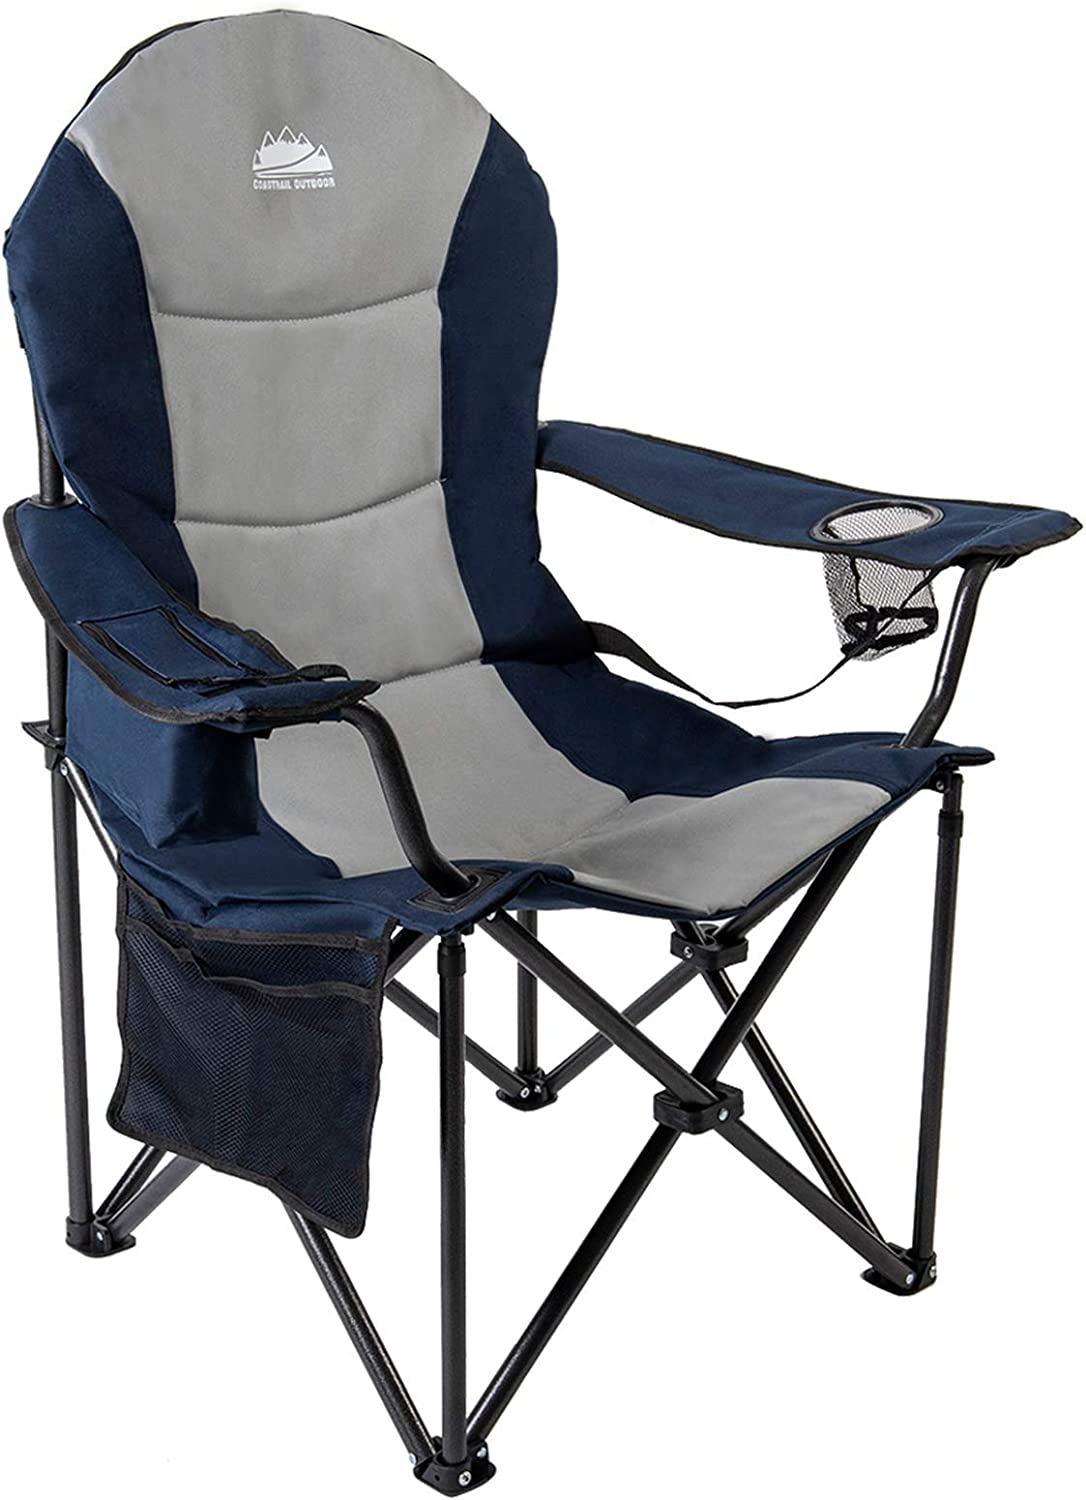 Coastrail Outdoor Camping Chair with Back Lumbar Oversi Max 65% OFF Superior Support